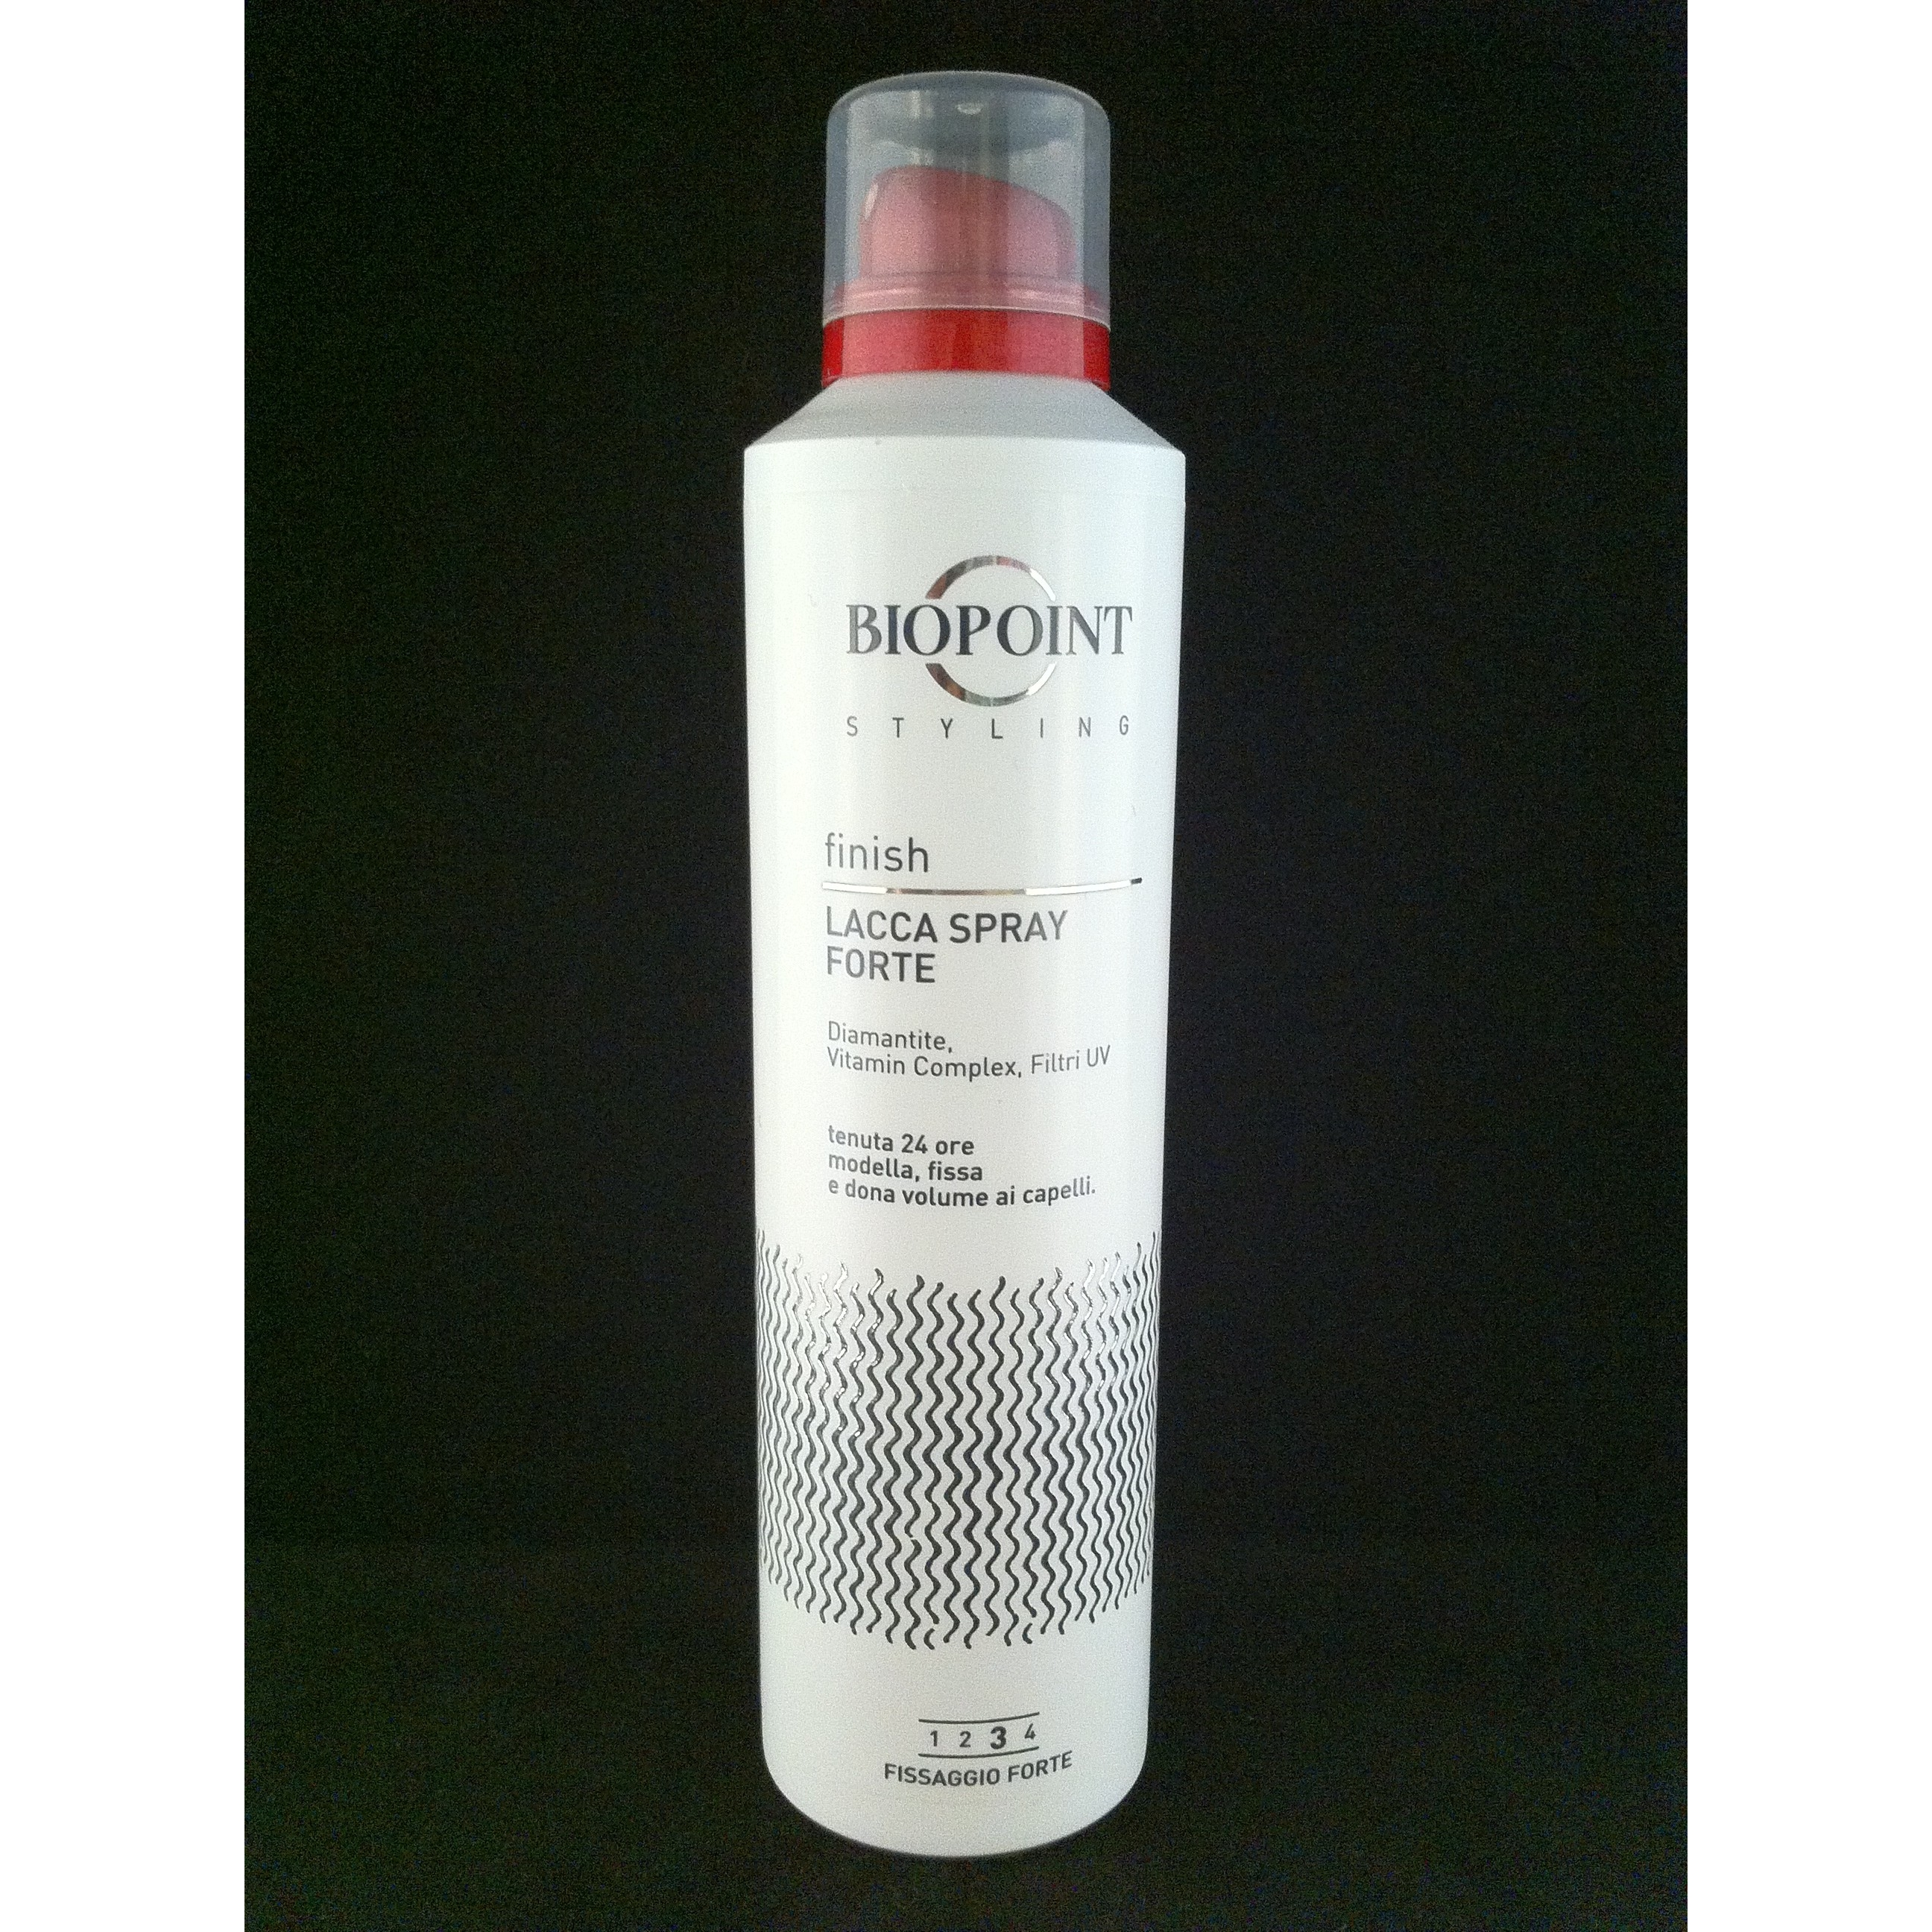 Biopoint Styling Finish lacca spray fissante forte no gas 200 ml